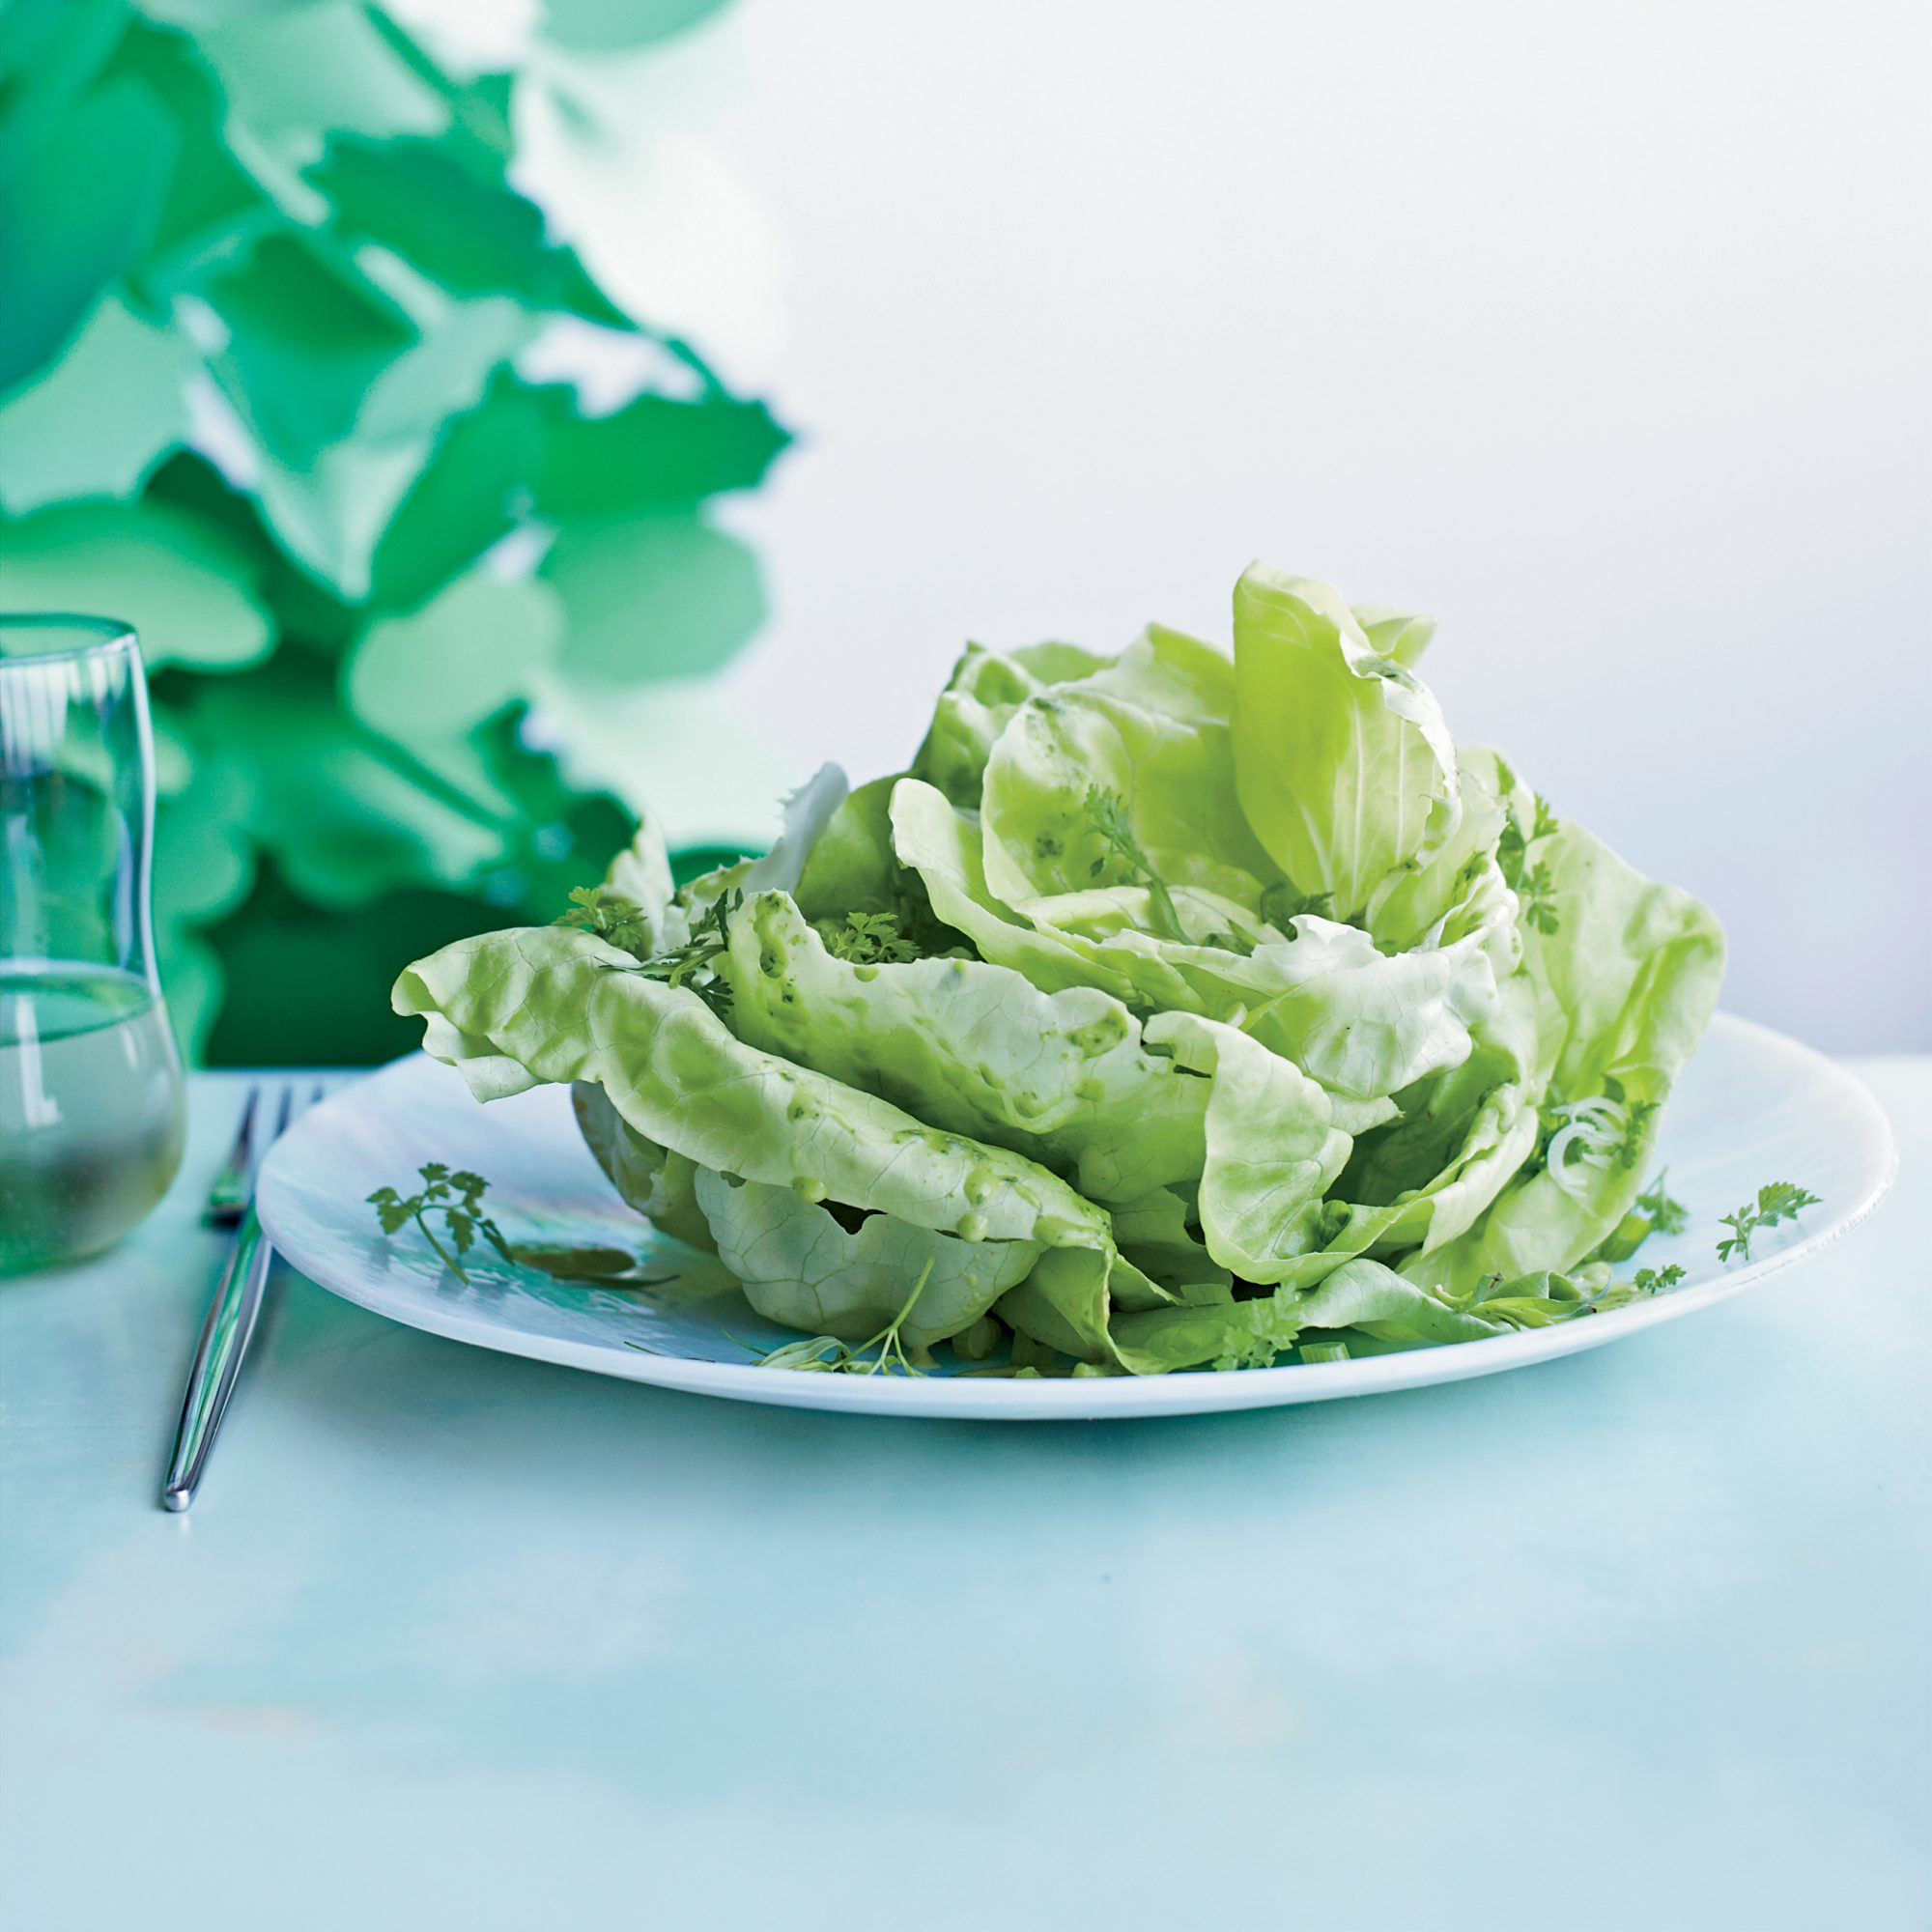 201109-r-boston-lettuce-salad-with-herbs.jpg